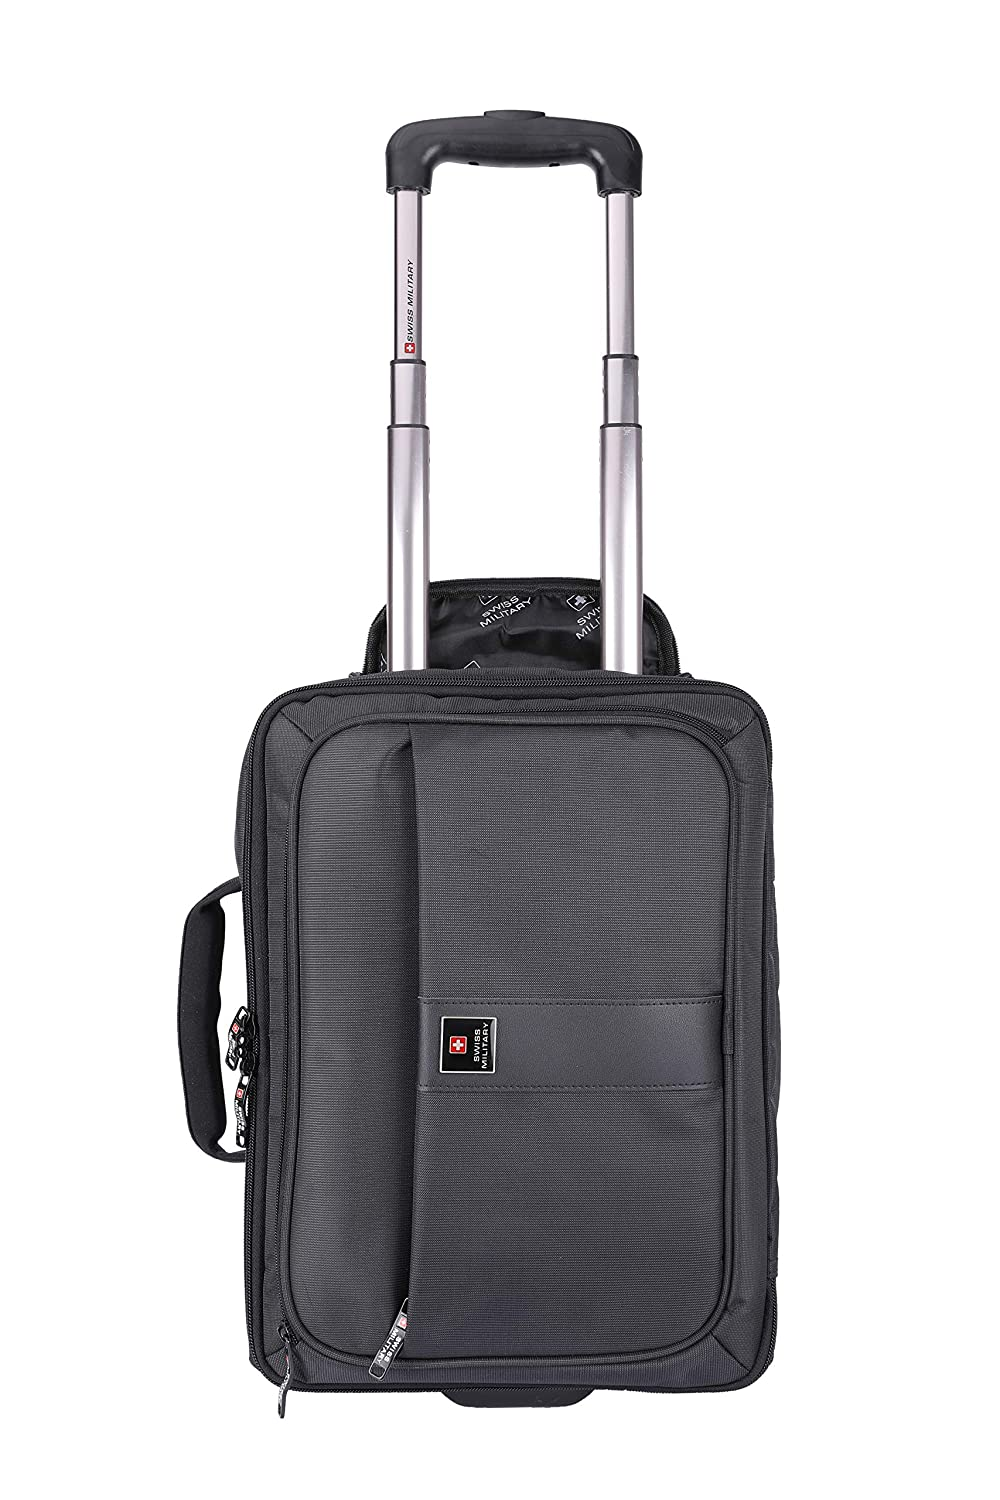 5af97647e Swiss Military 23 Ltrs Black Softsided Briefcase (LTB-4): Amazon.in: Bags,  Wallets & Luggage